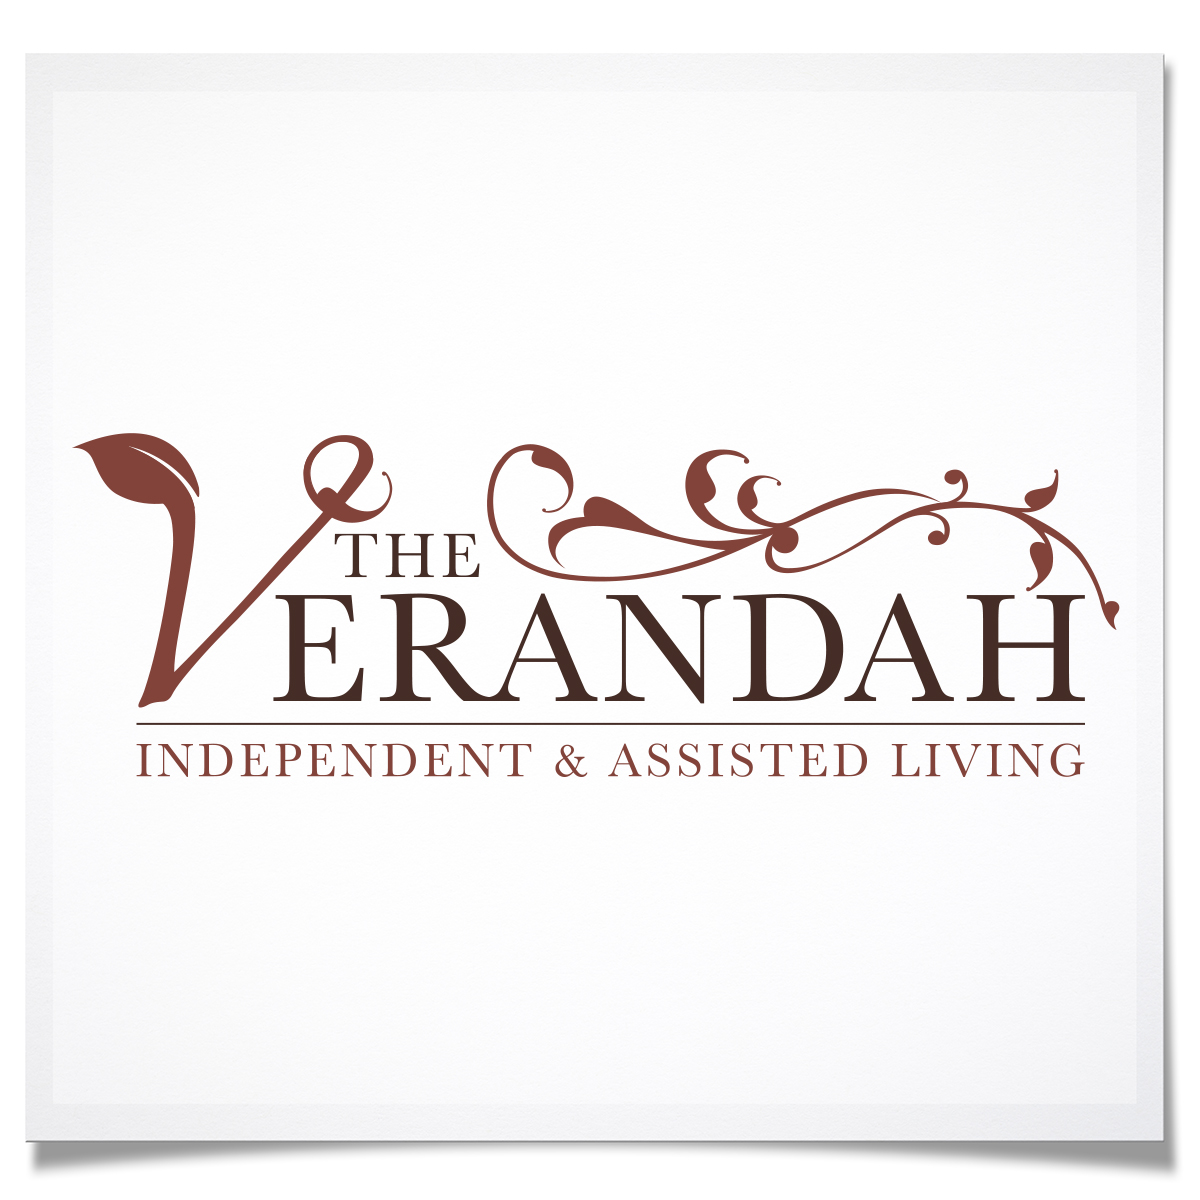 The Verandah Independent & Assisted Living